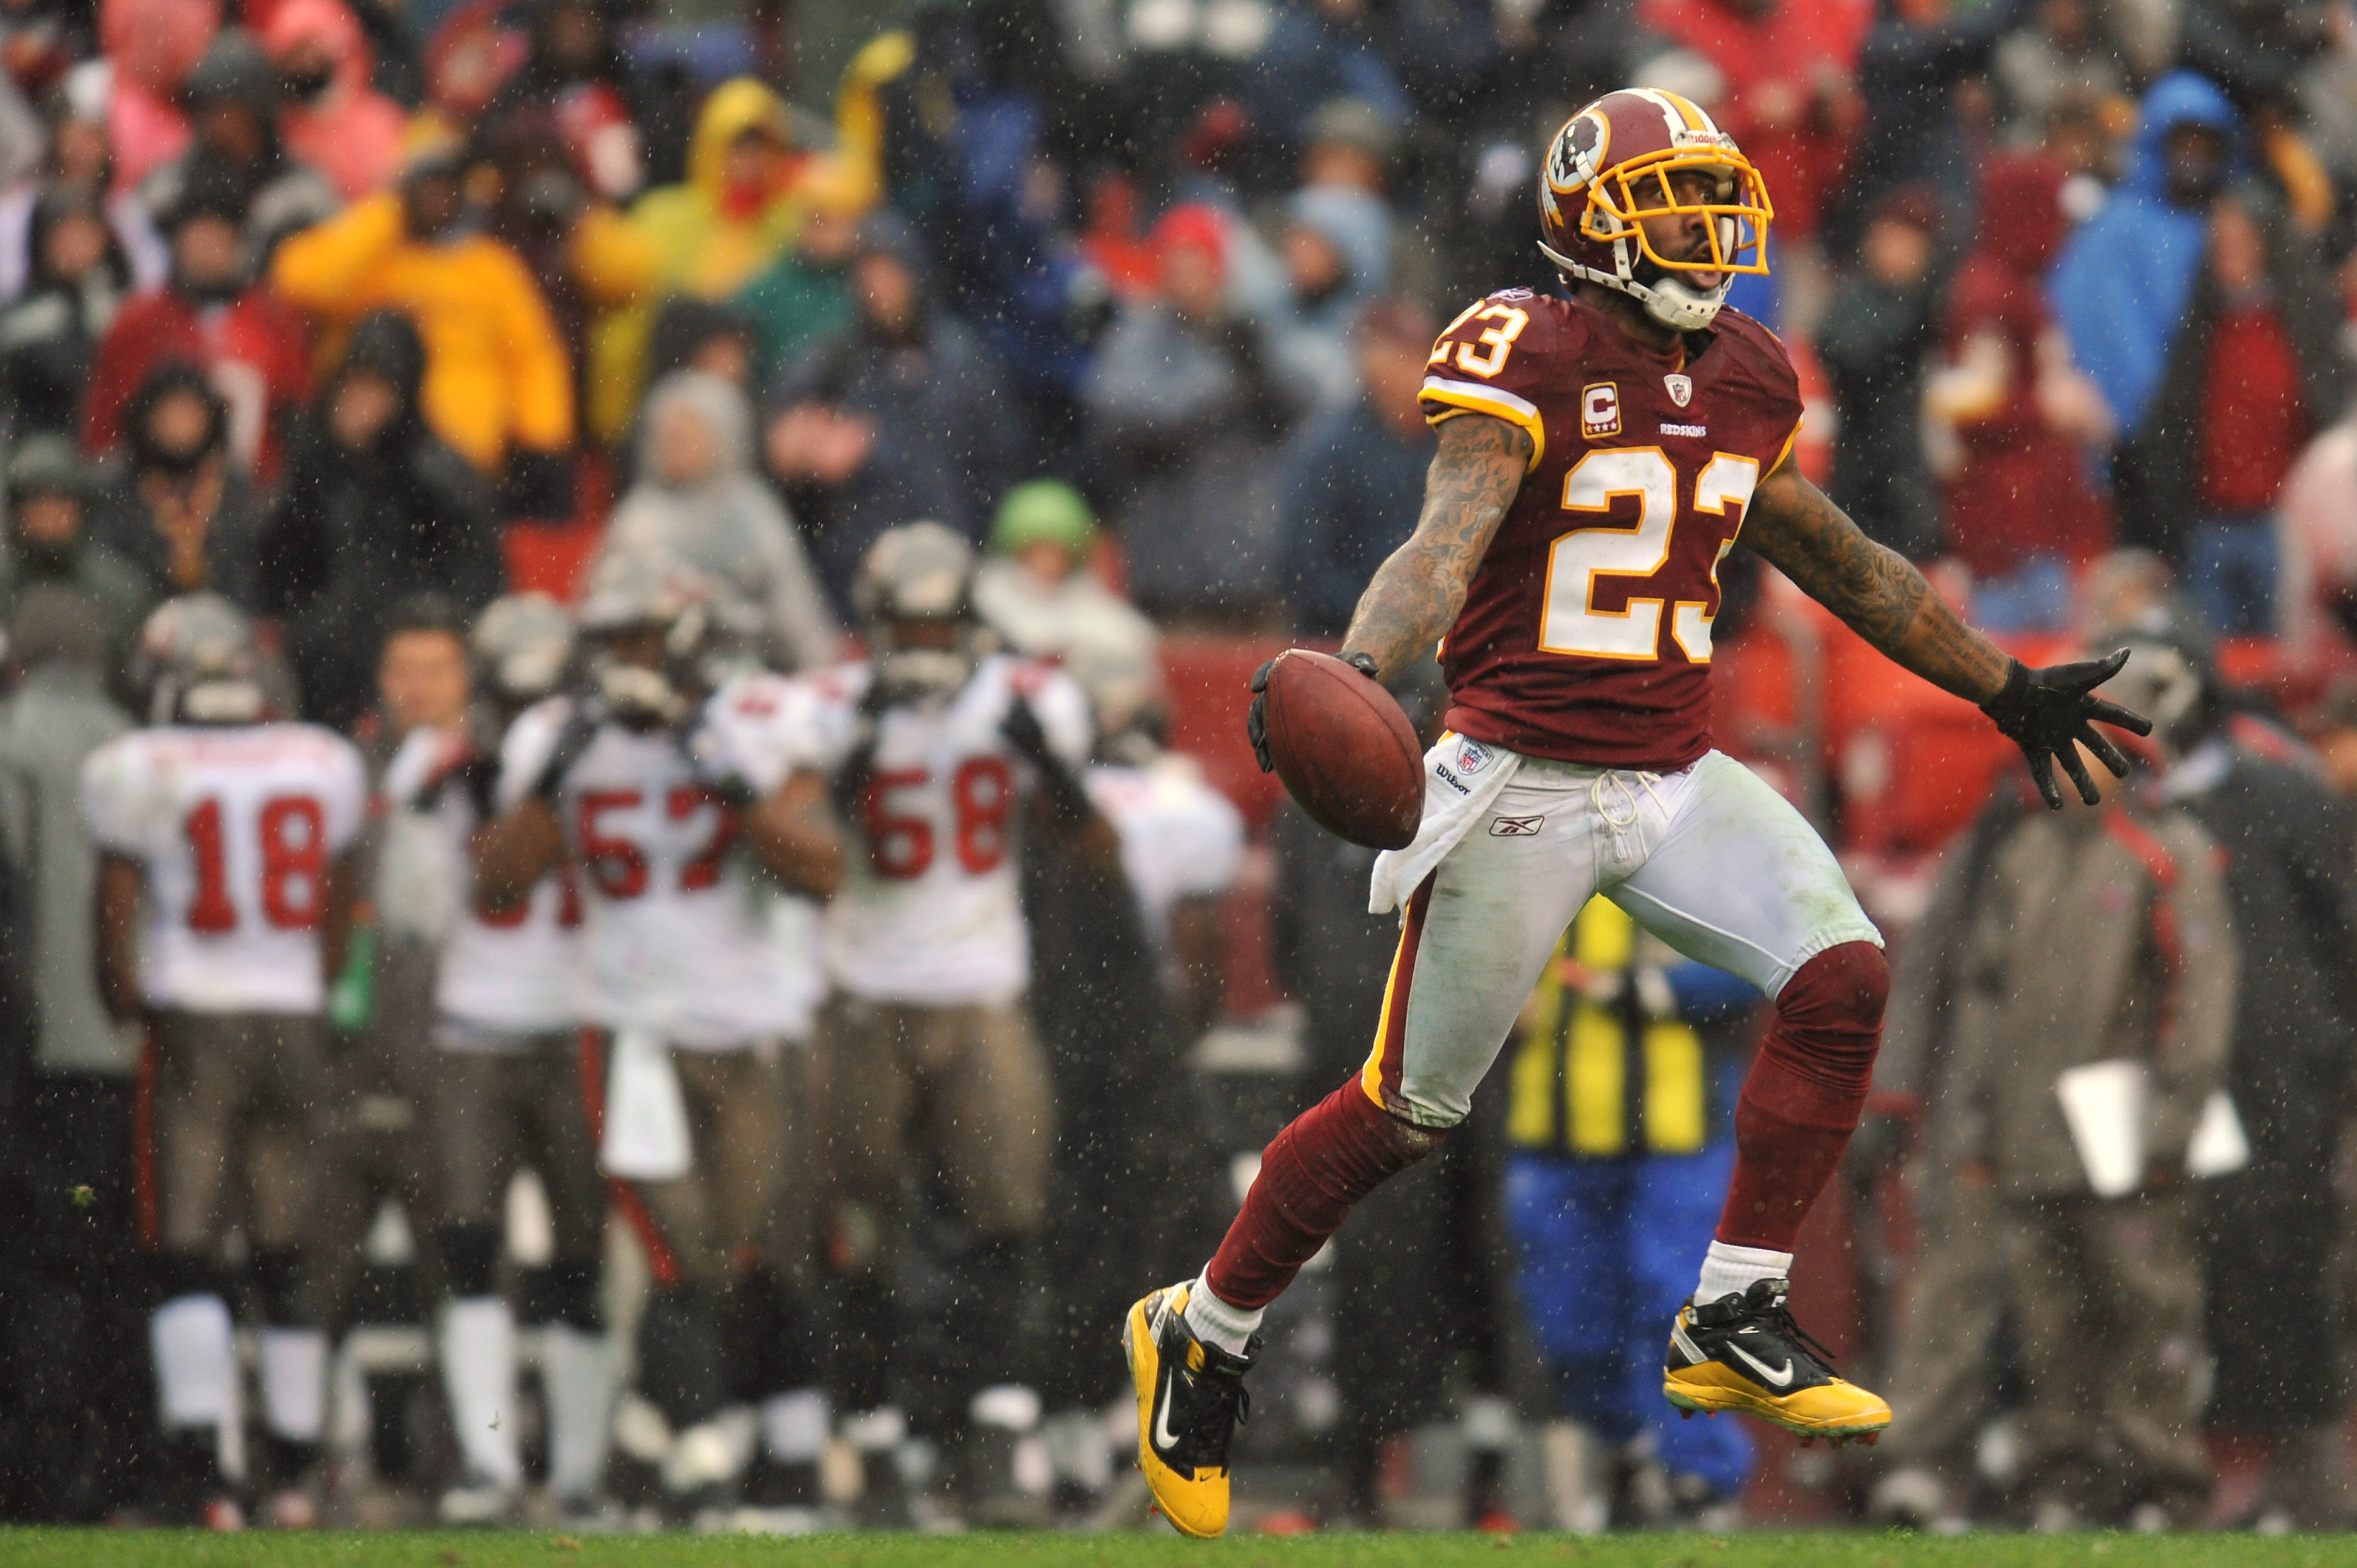 LANDOVER, MD - DECEMBER 12:  DeAngelo Hall #23 of the Washington Redskins celebrates a fumble recovery that lead to a touchdown against the Tampa Bay Buccaneers at FedExField on December 12, 2010 in Landover, Maryland. The Redskins lead the Buccaneers at